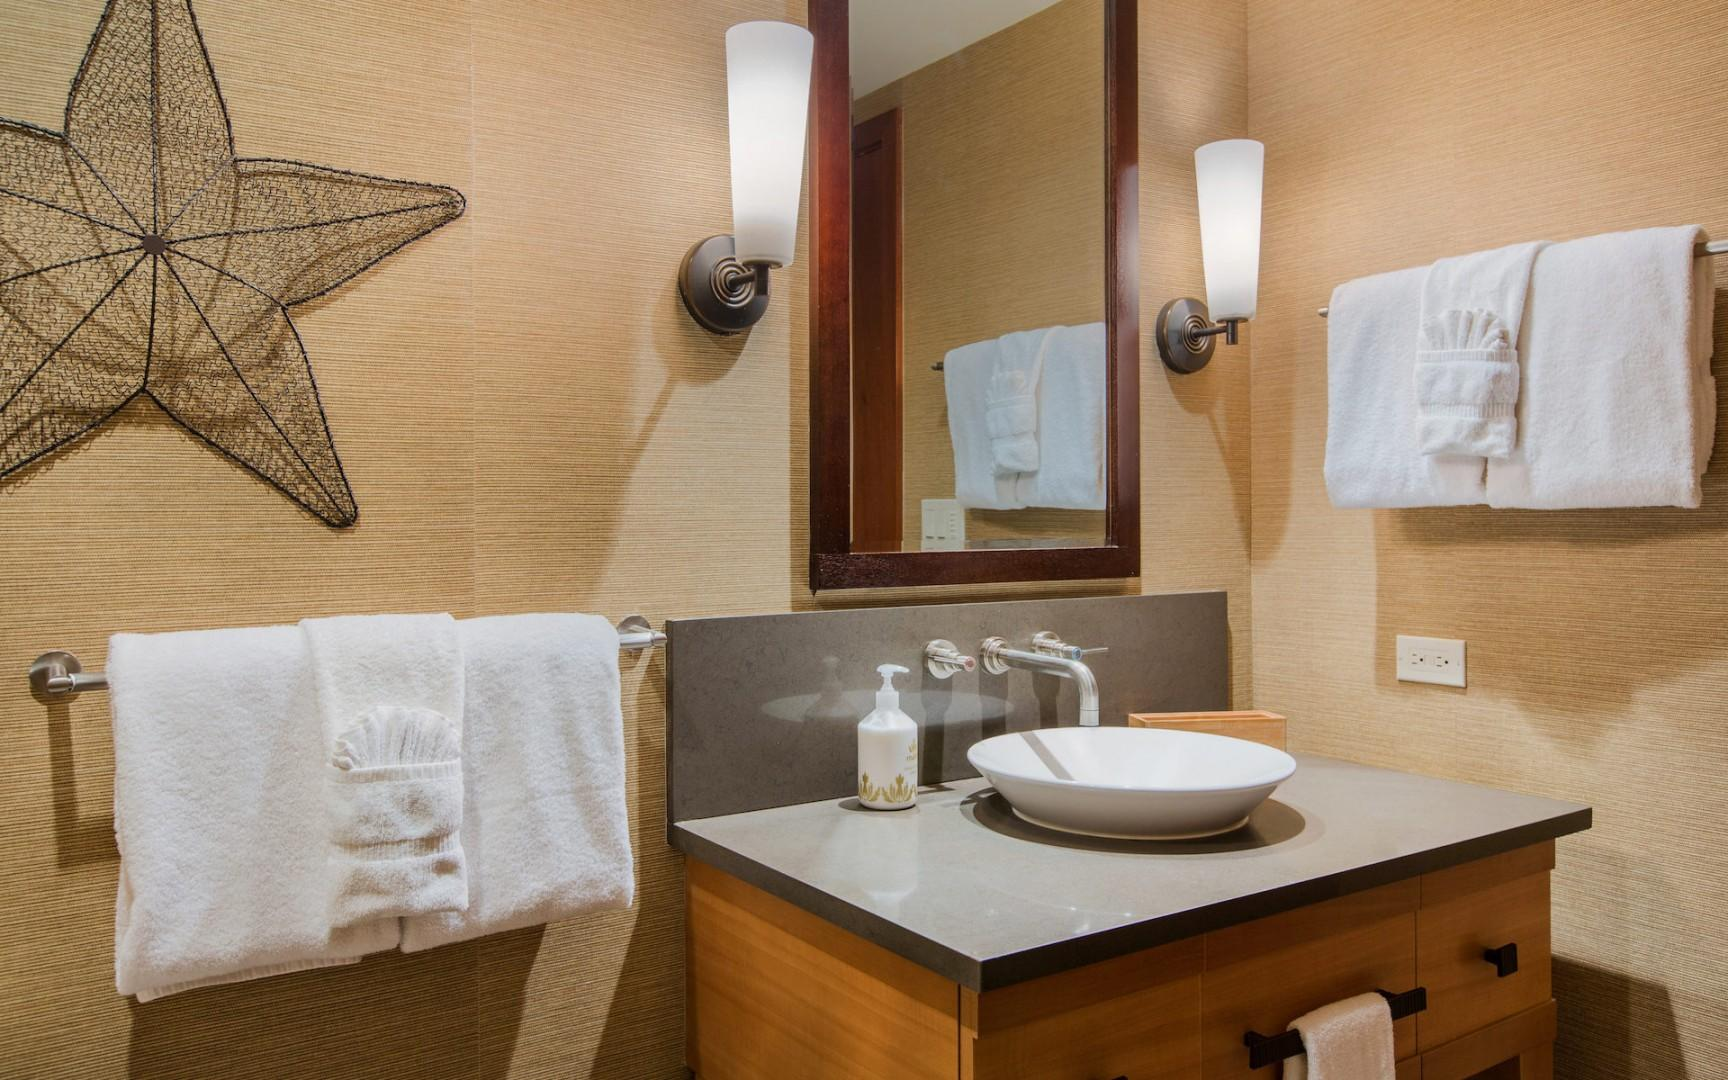 The 2nd (guest) bathroom features deep soaking tub and shower